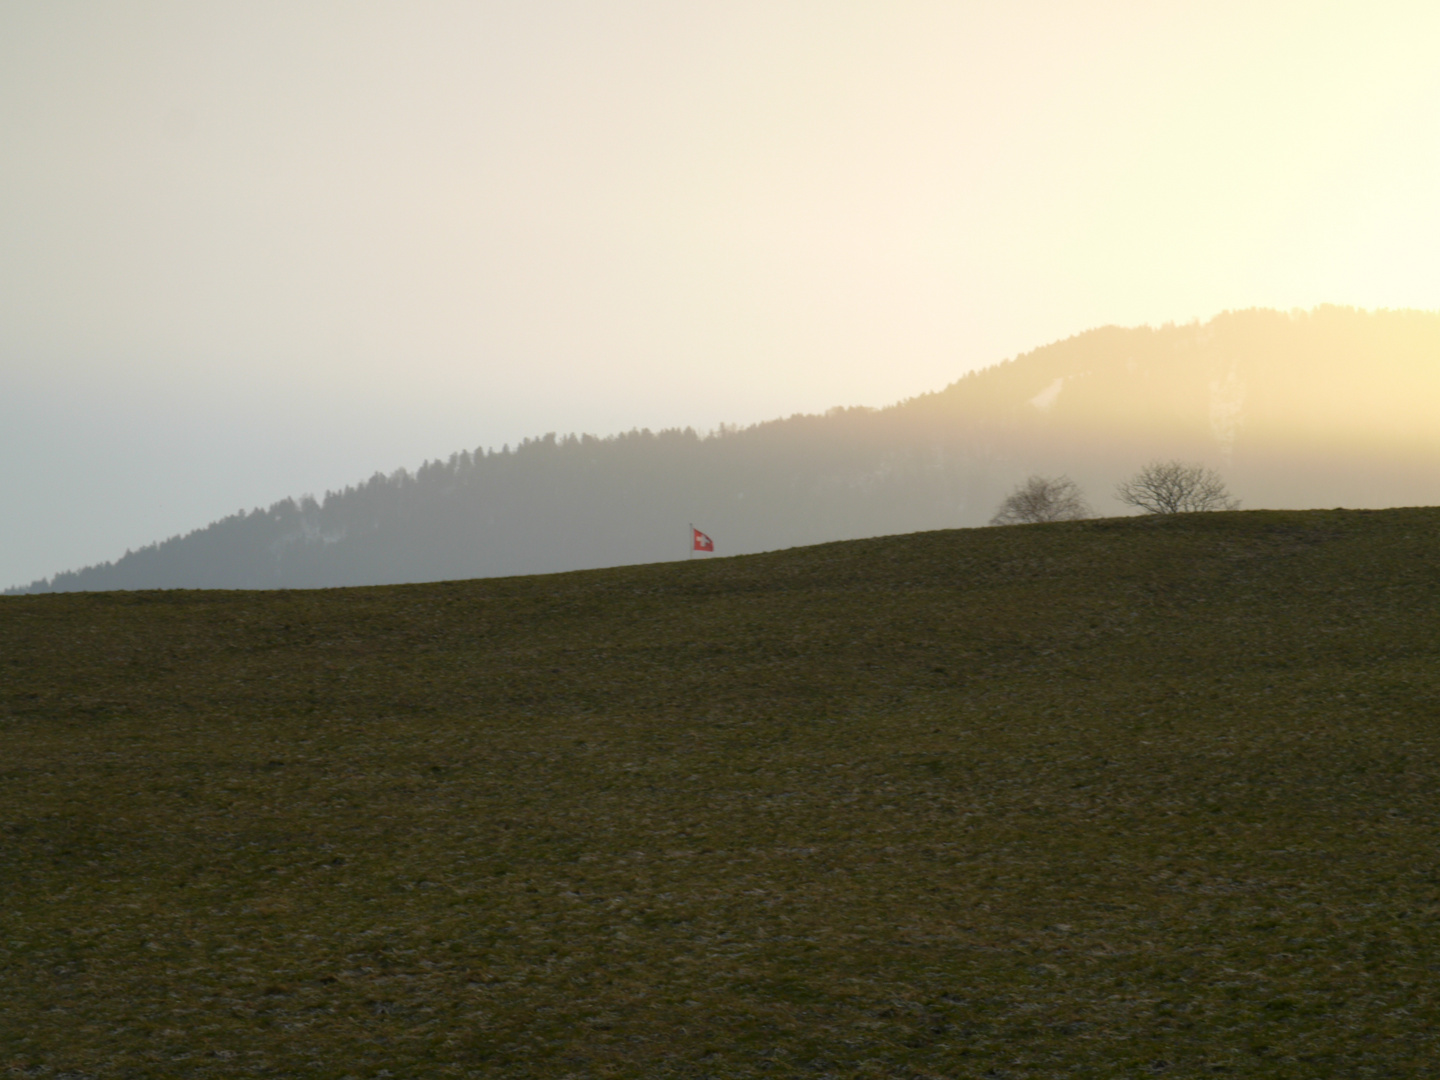 Swiss Field in the Morning / Schweizerisches Feld am Morgen